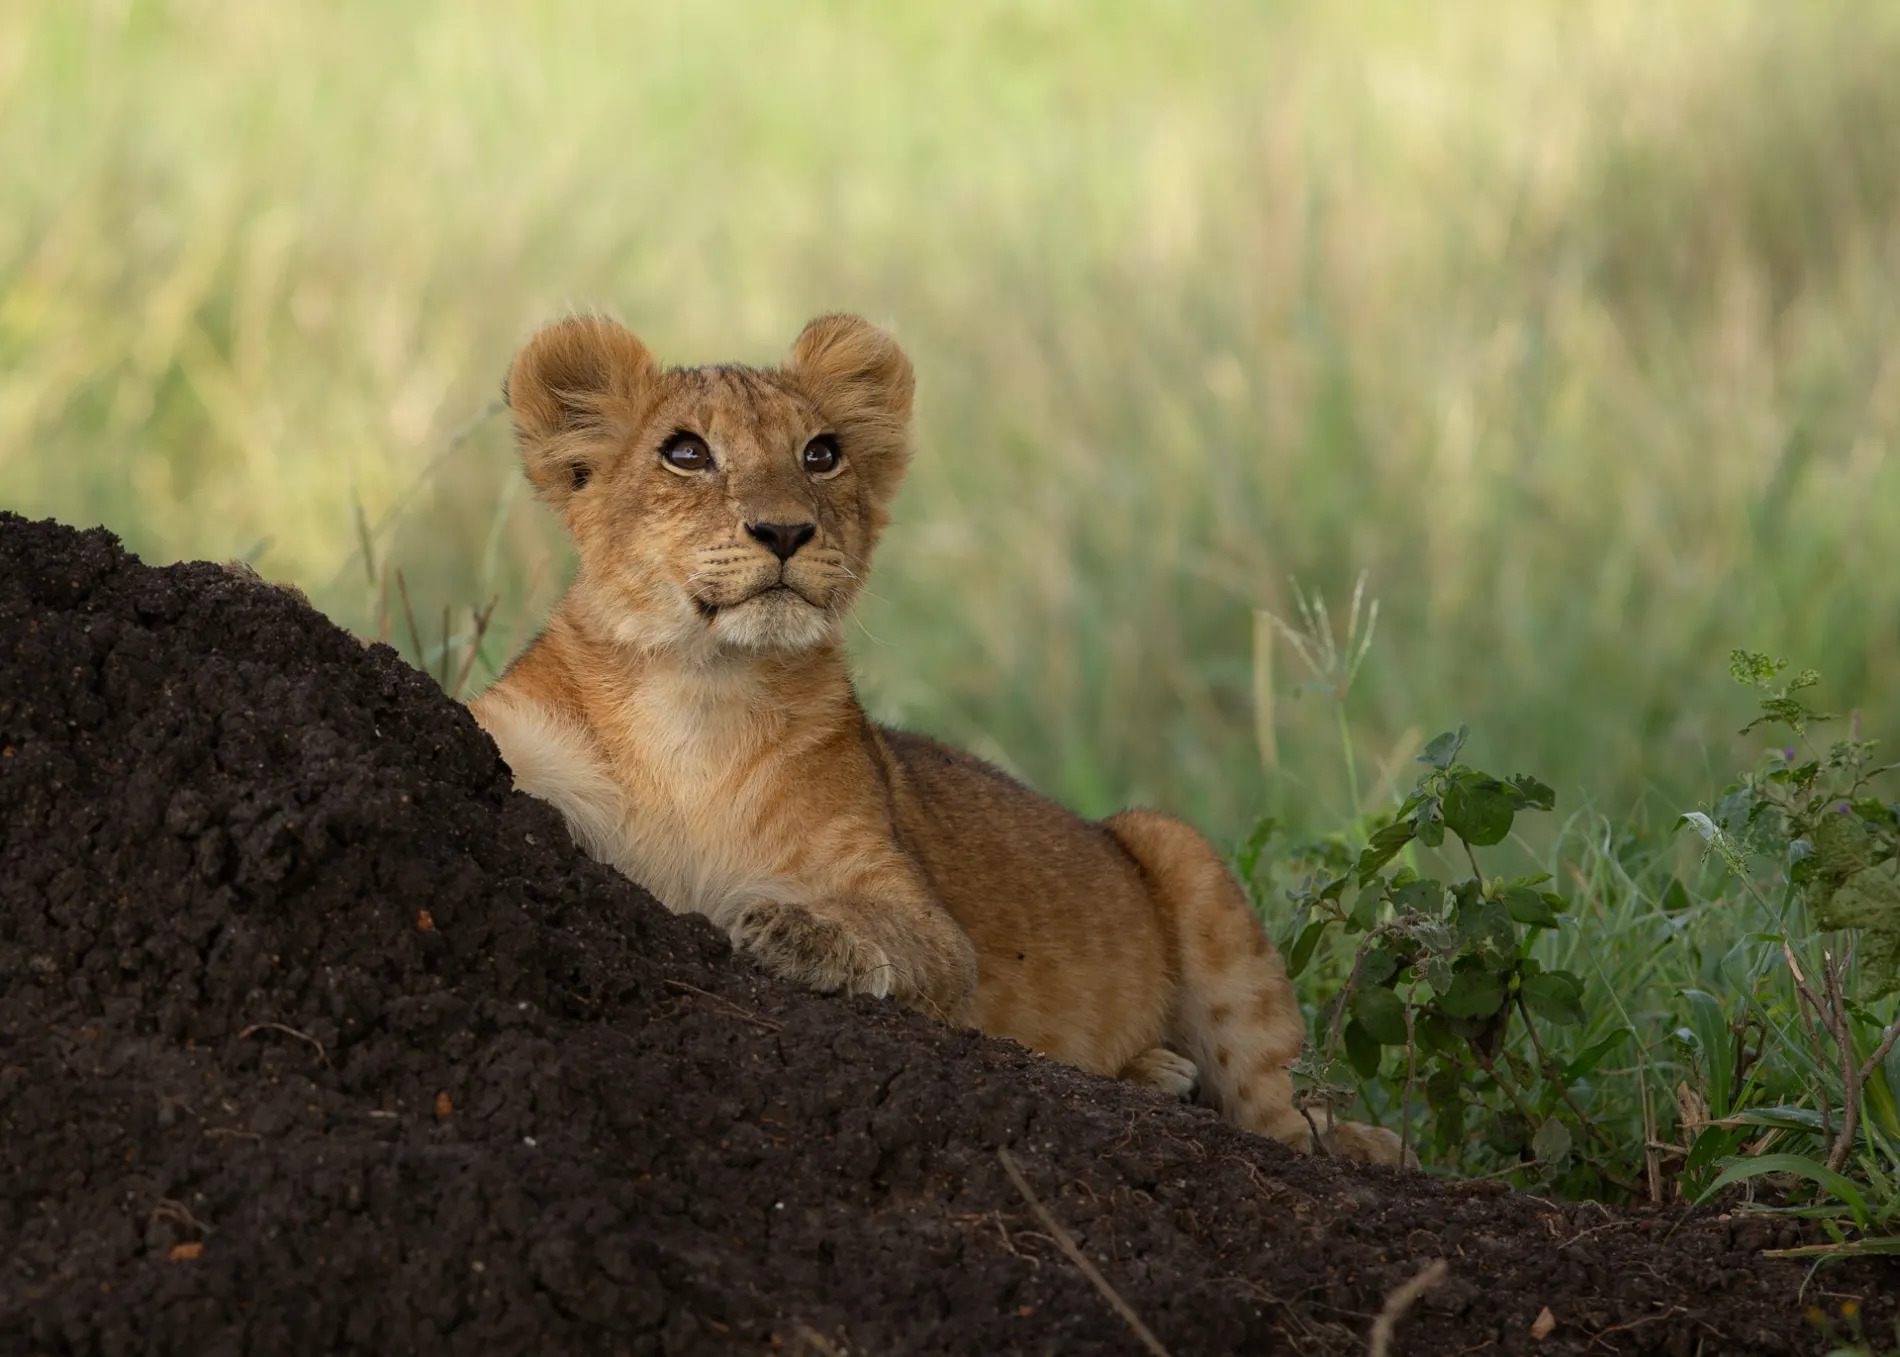 Lion cub and mound